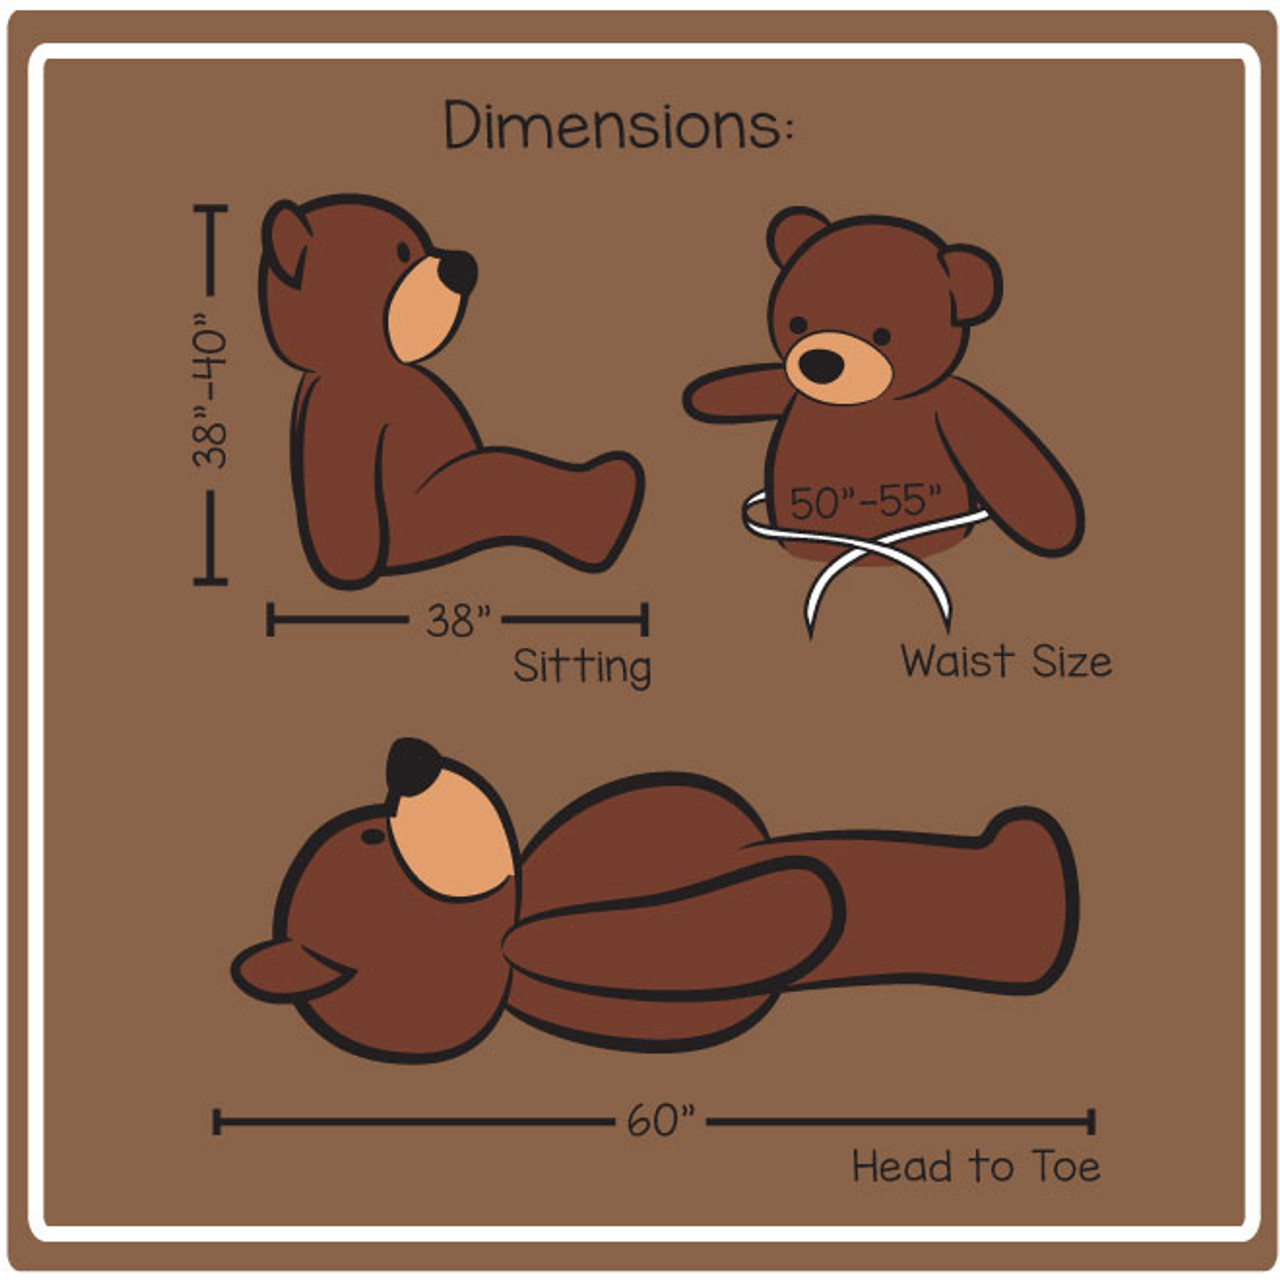 60in Cuddles Dimensions